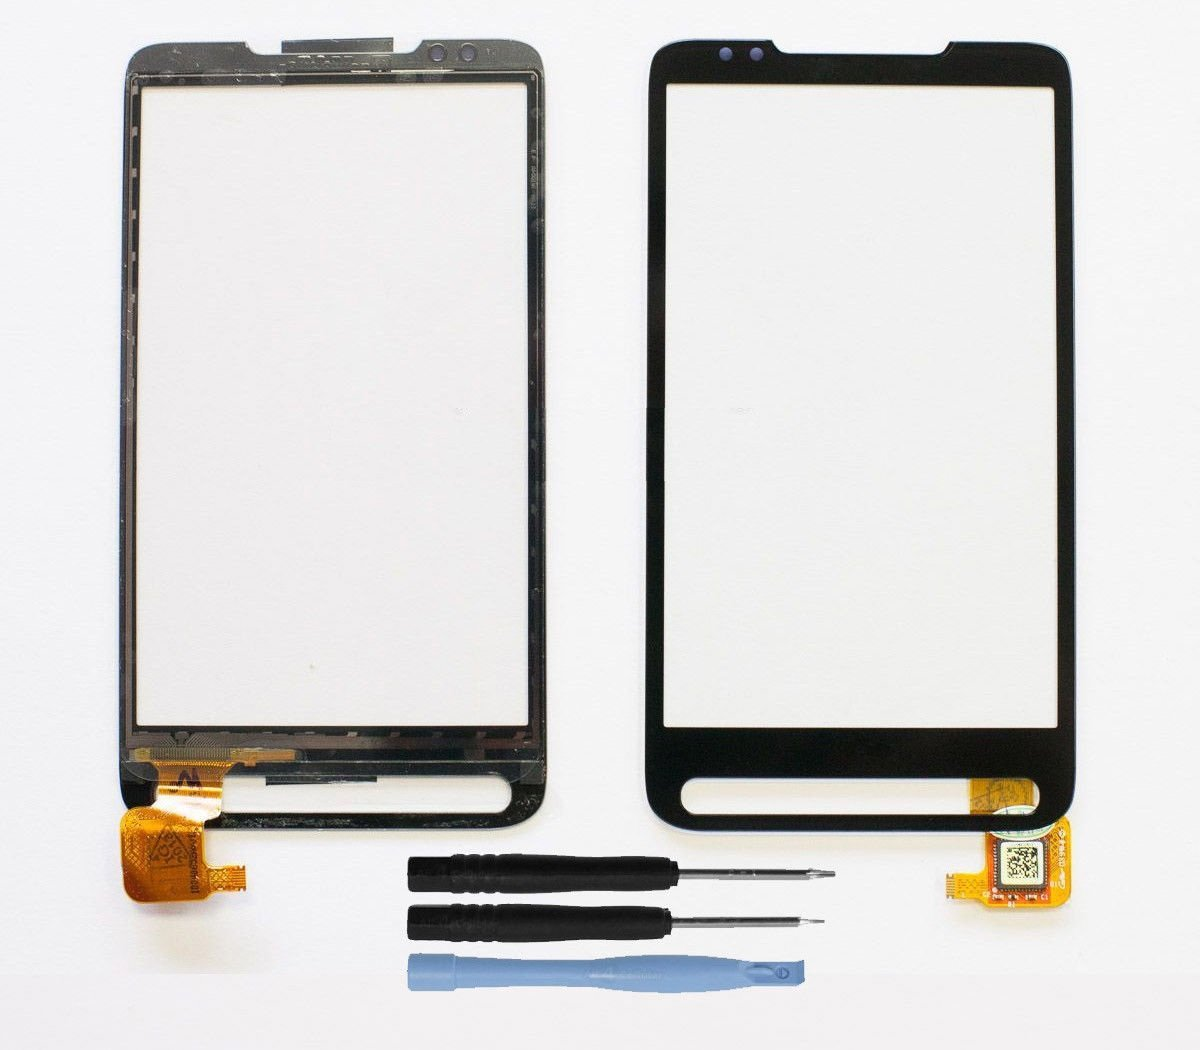 New Replacement Touch Screen Glass Digitizer Lens Repair Part for HTC HD2 HD 2